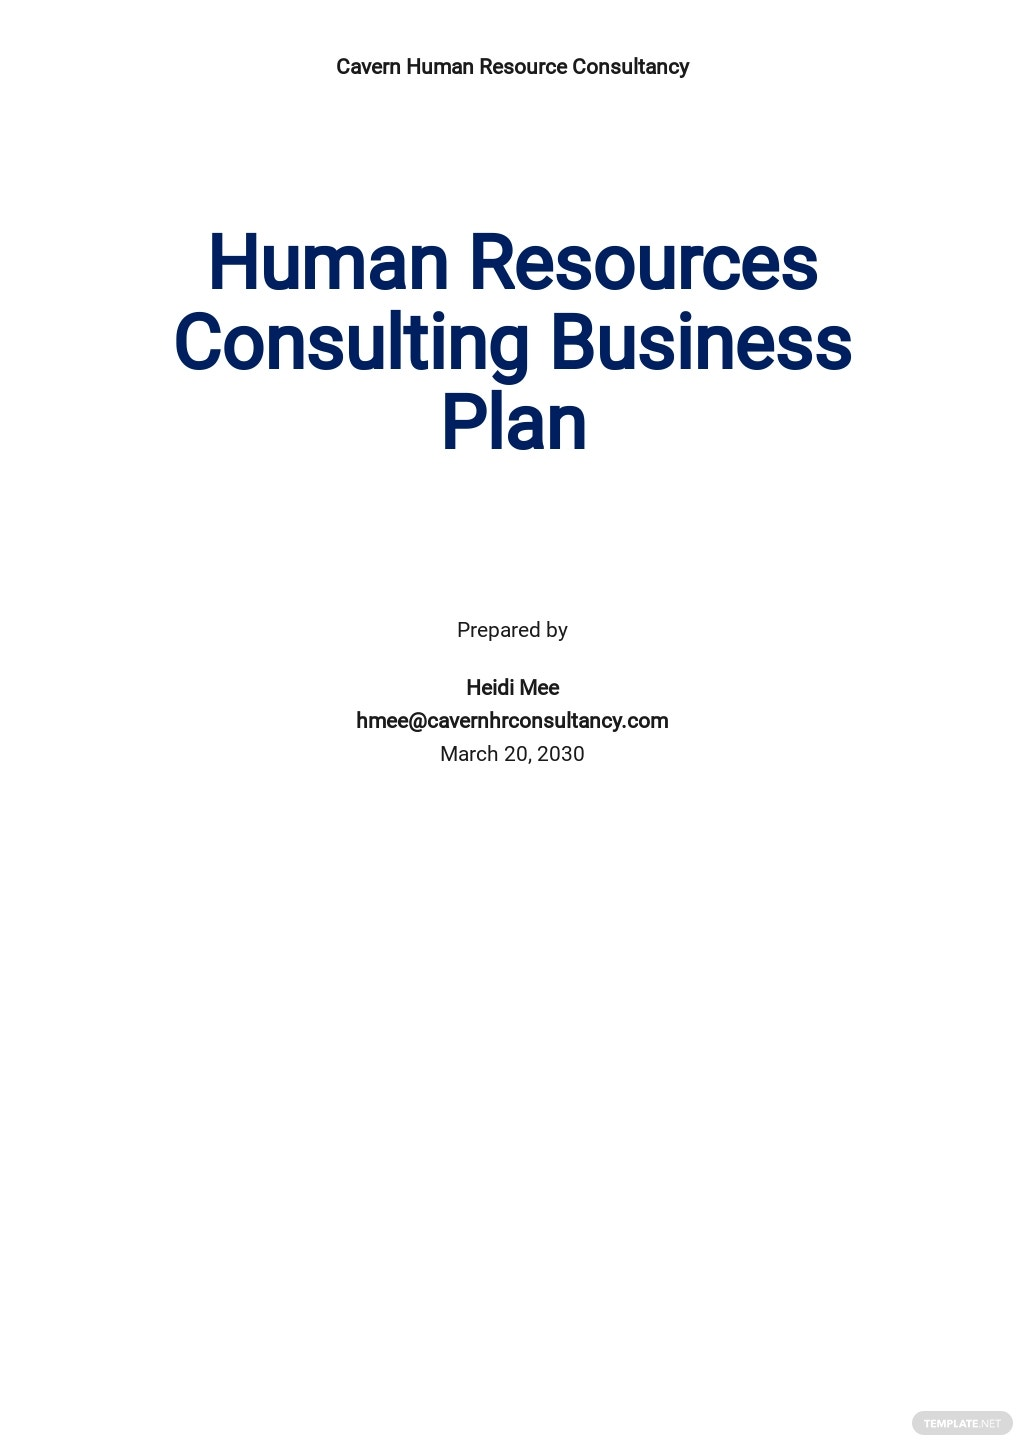 Sample Human Resources Consulting Business Plan Template